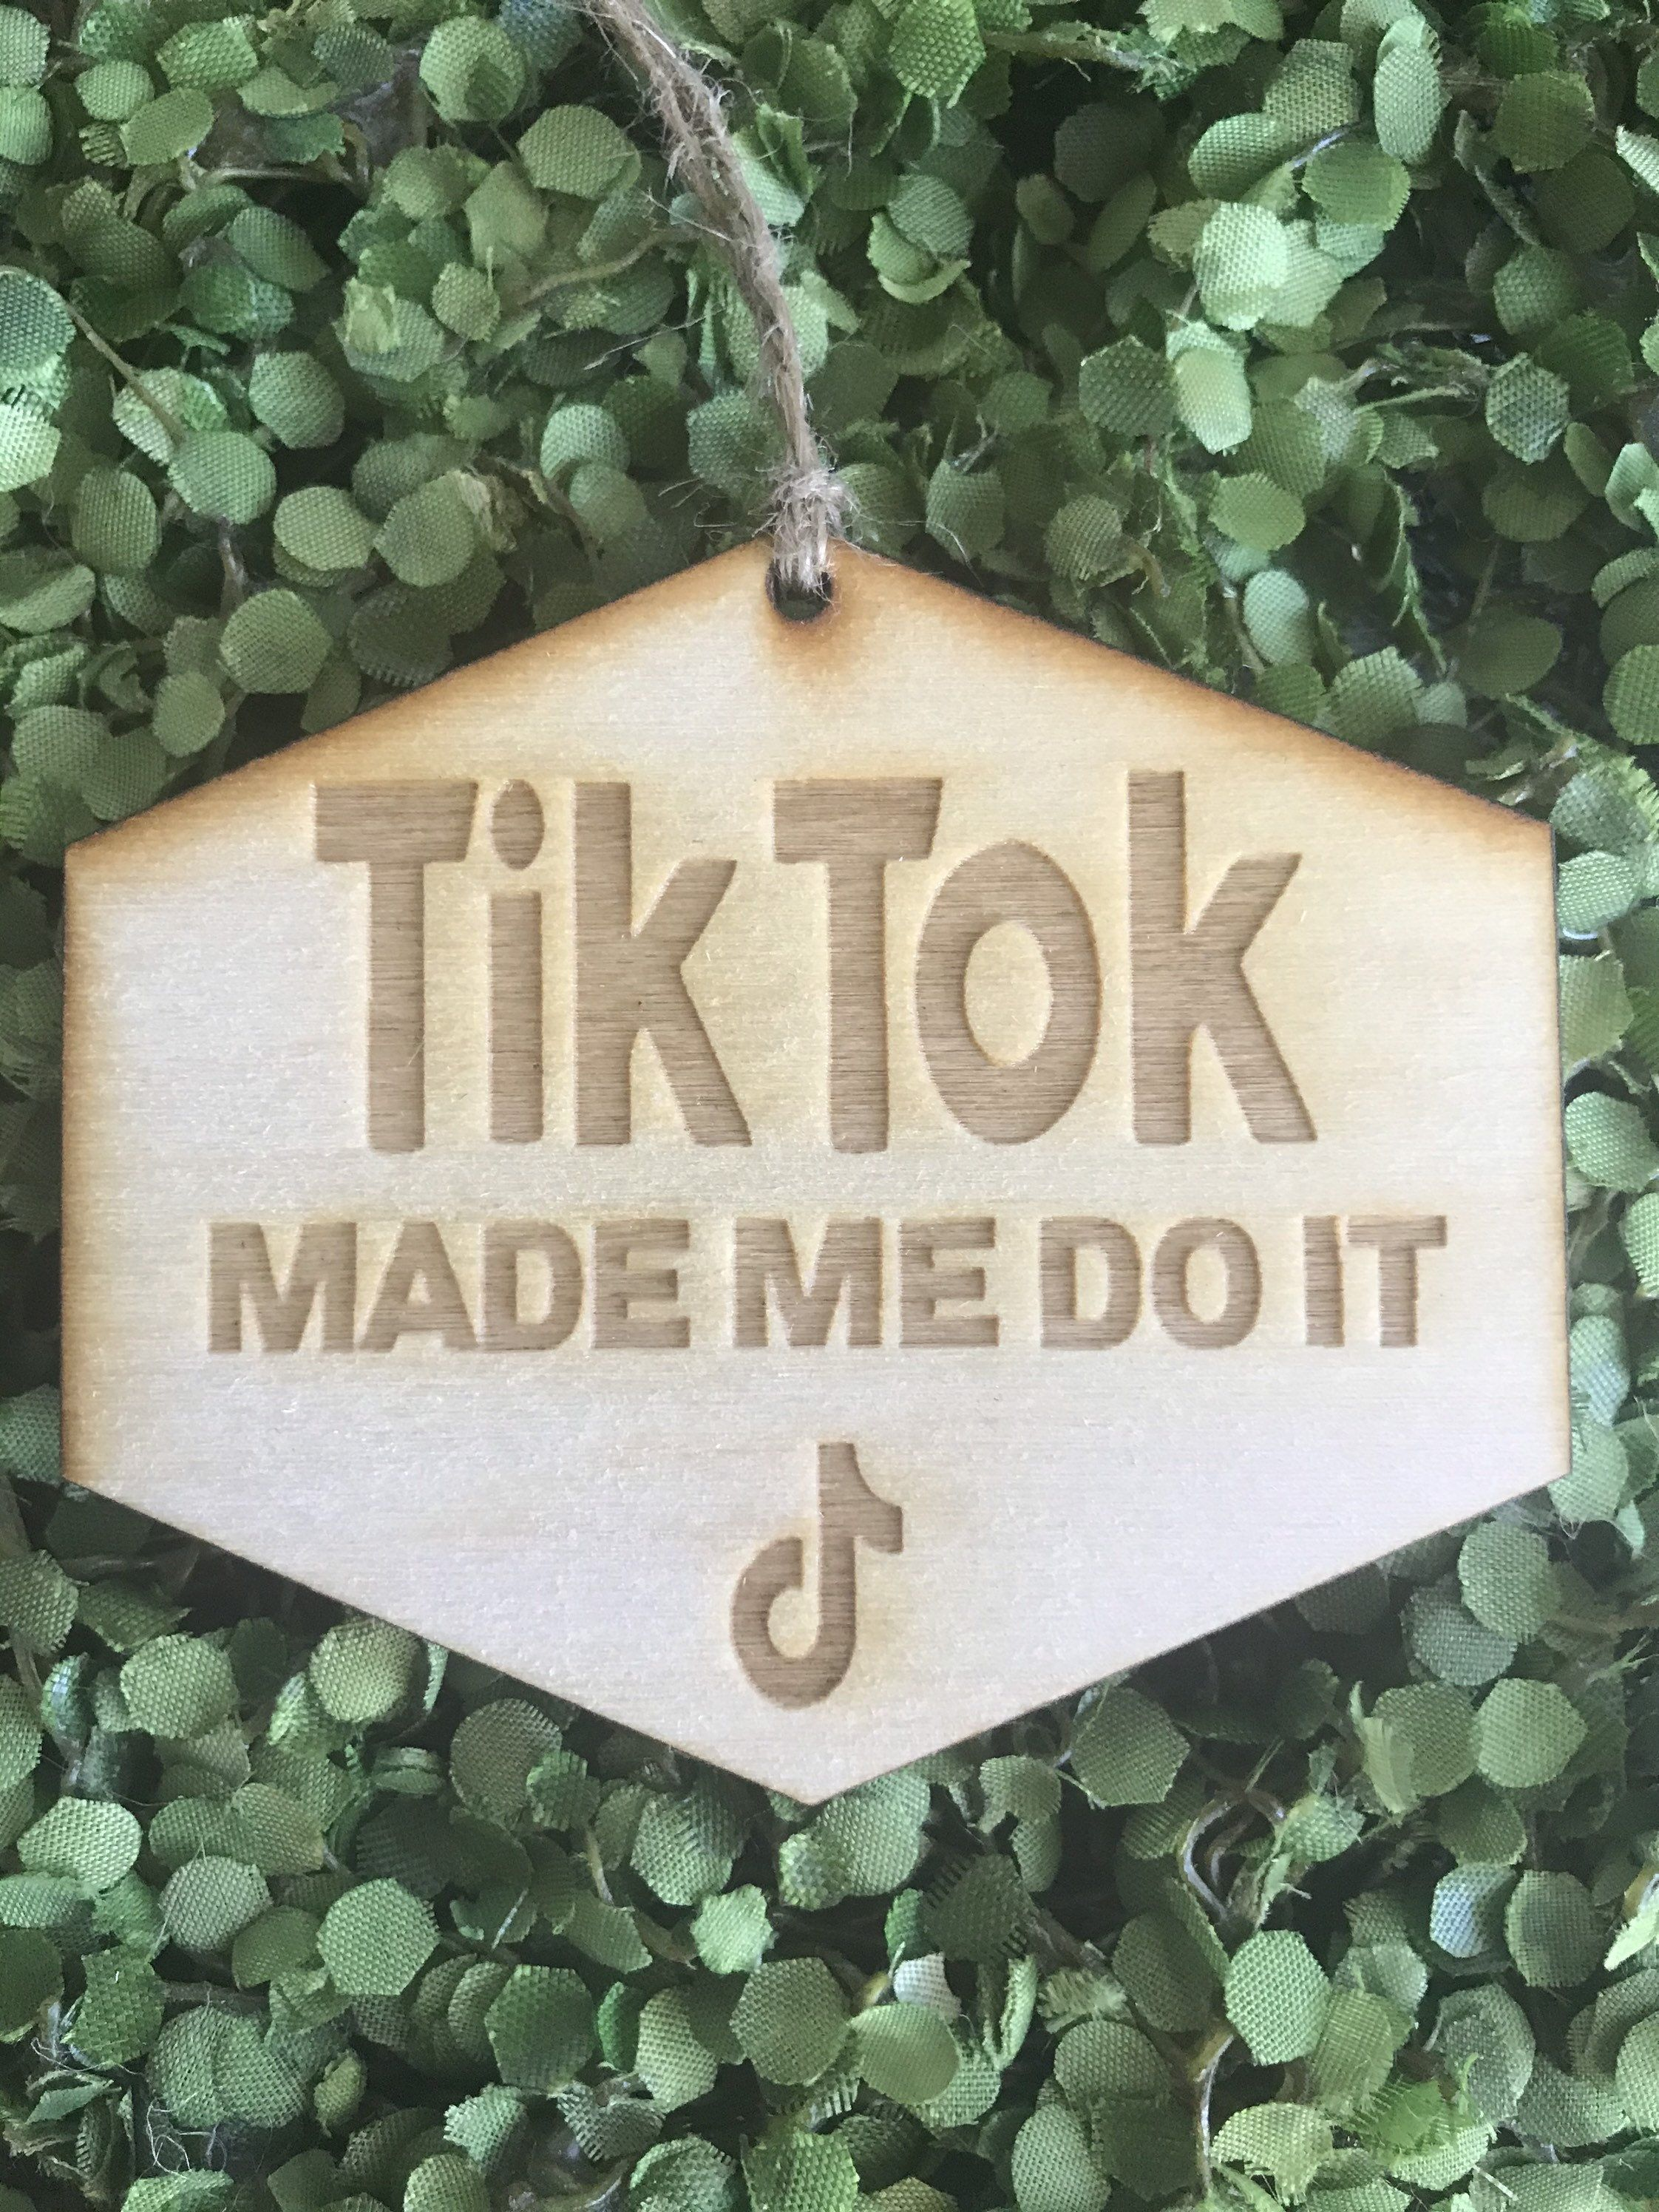 Best How To Get Spotify Codes For Songs Tiktok Glass Music Tik Tok Plaque Cricut Tutorial 2020 Youtube Cricut Tutorials Cricut Cricut Projects Vinyl